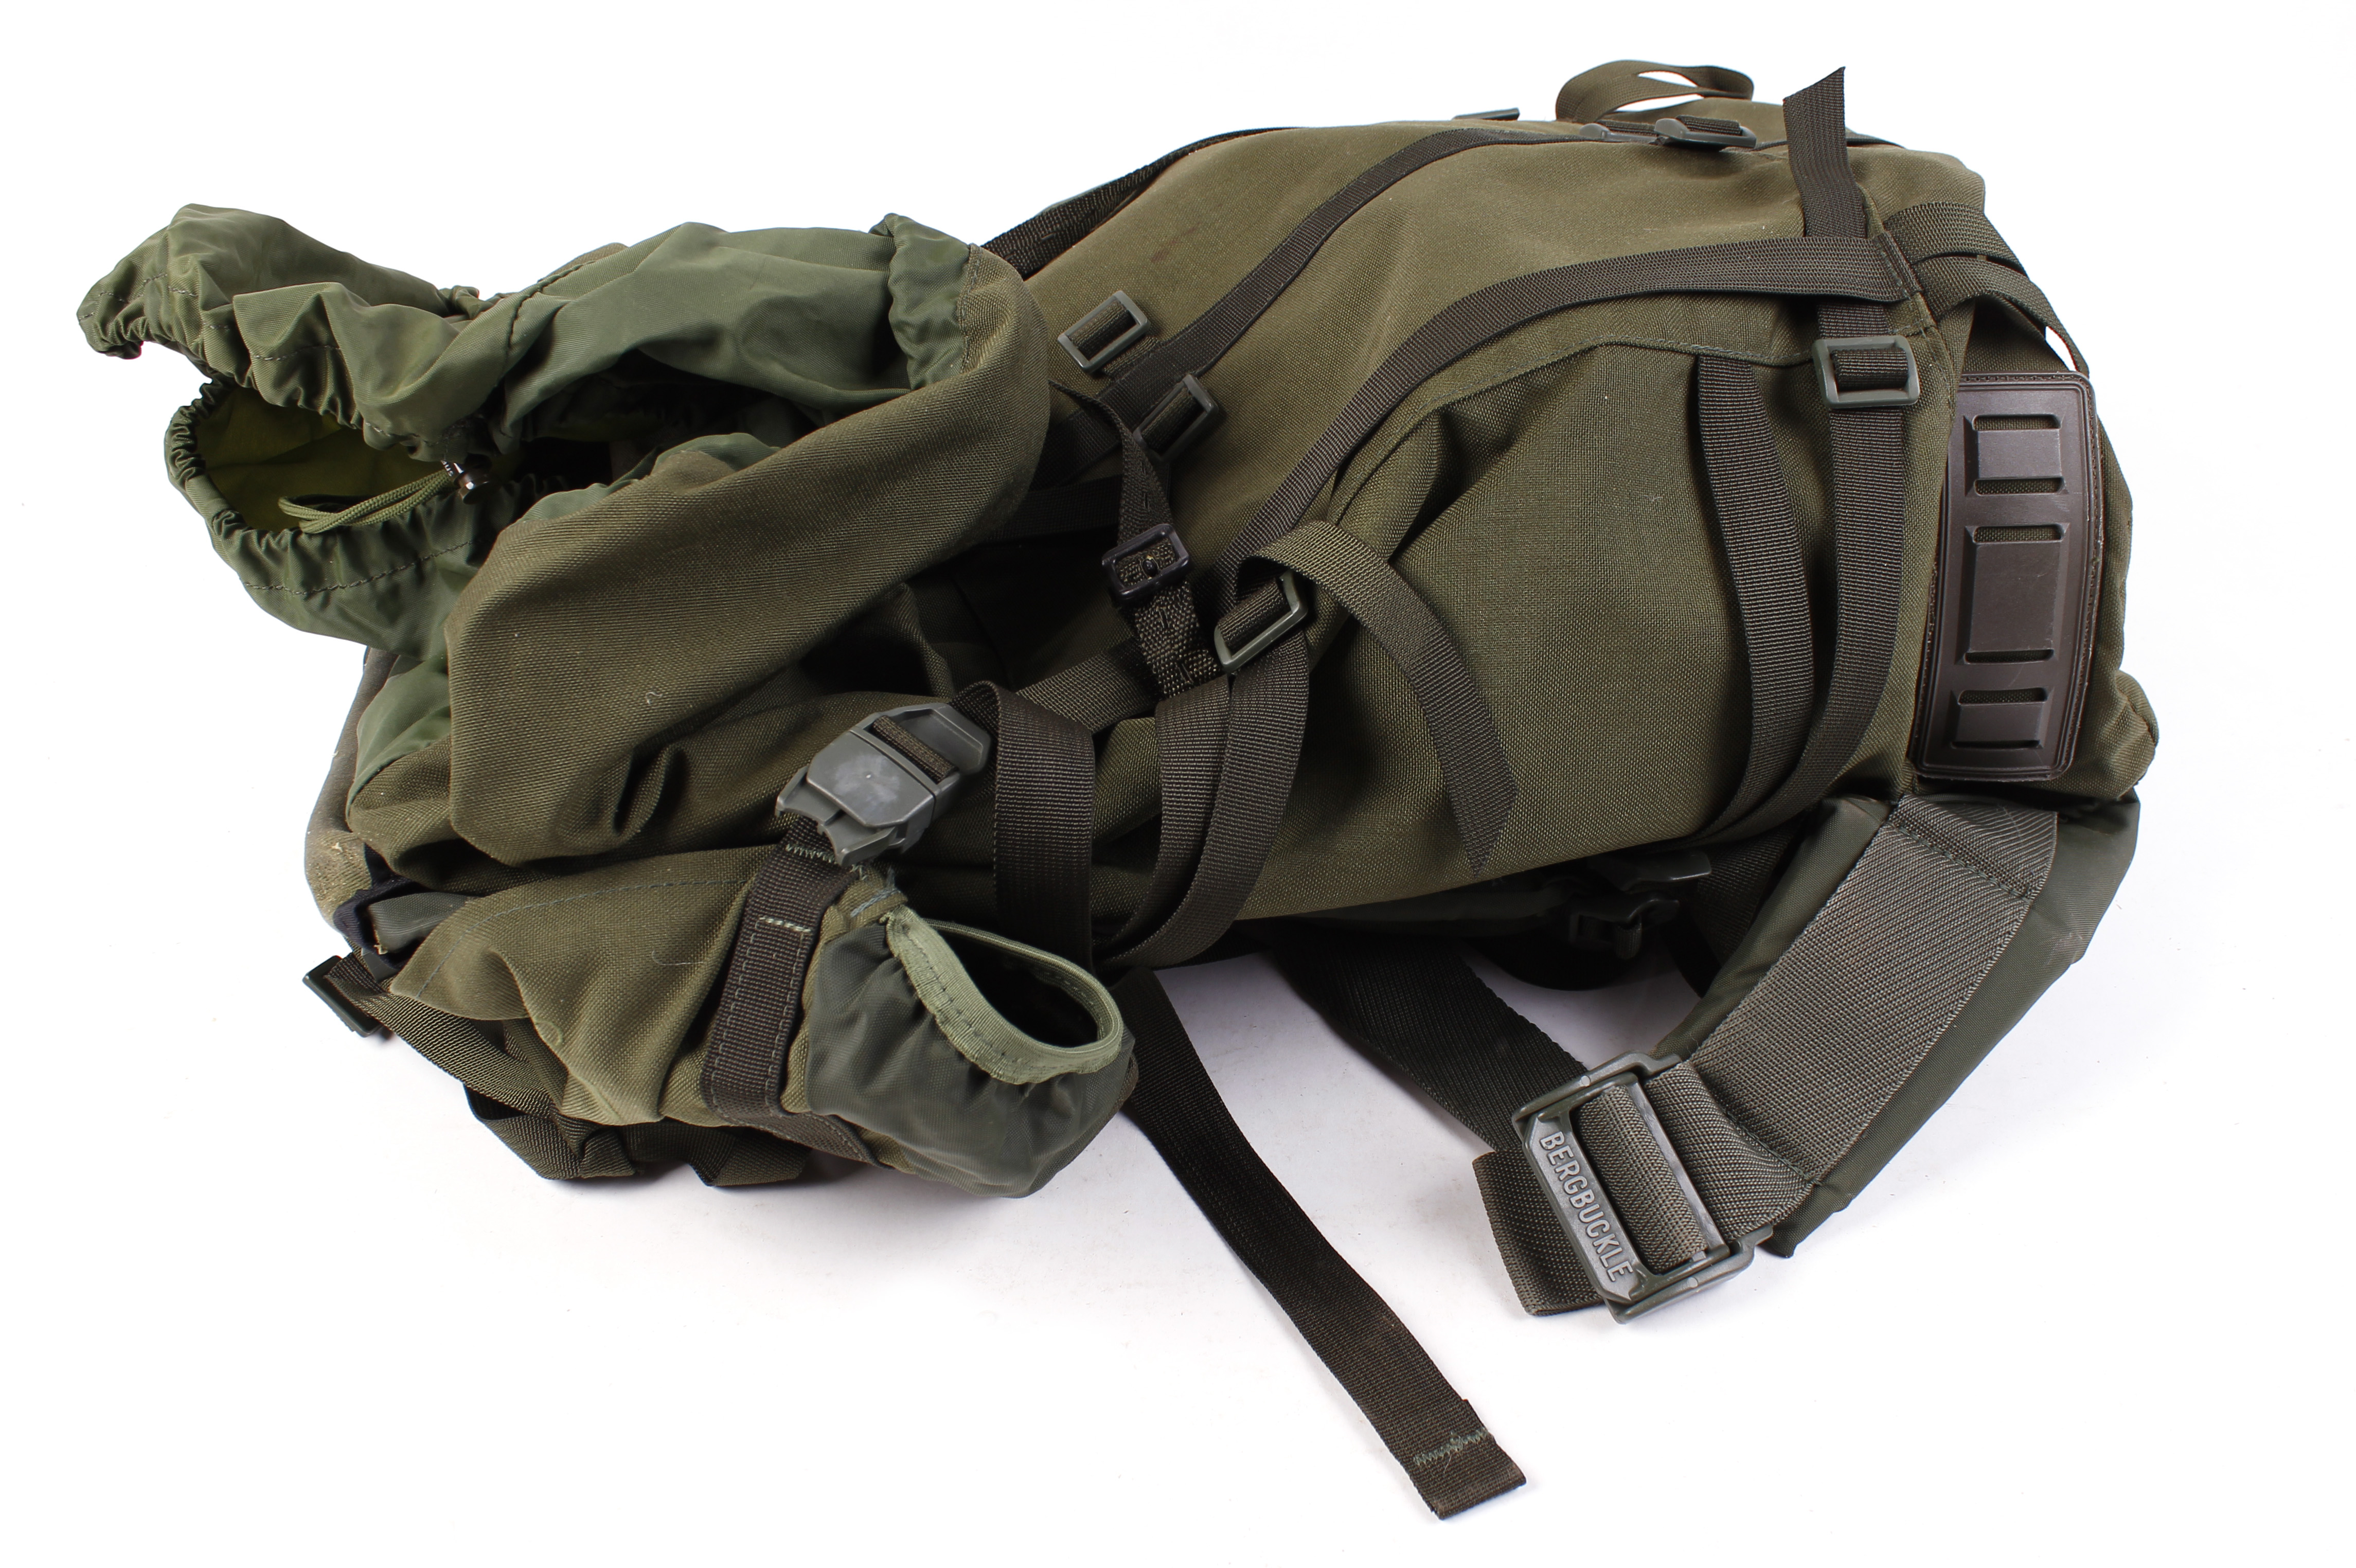 Lot 10 - Berghaus Roc 3 army back pack containing quantity various rifle slings, cartridges belts, etc